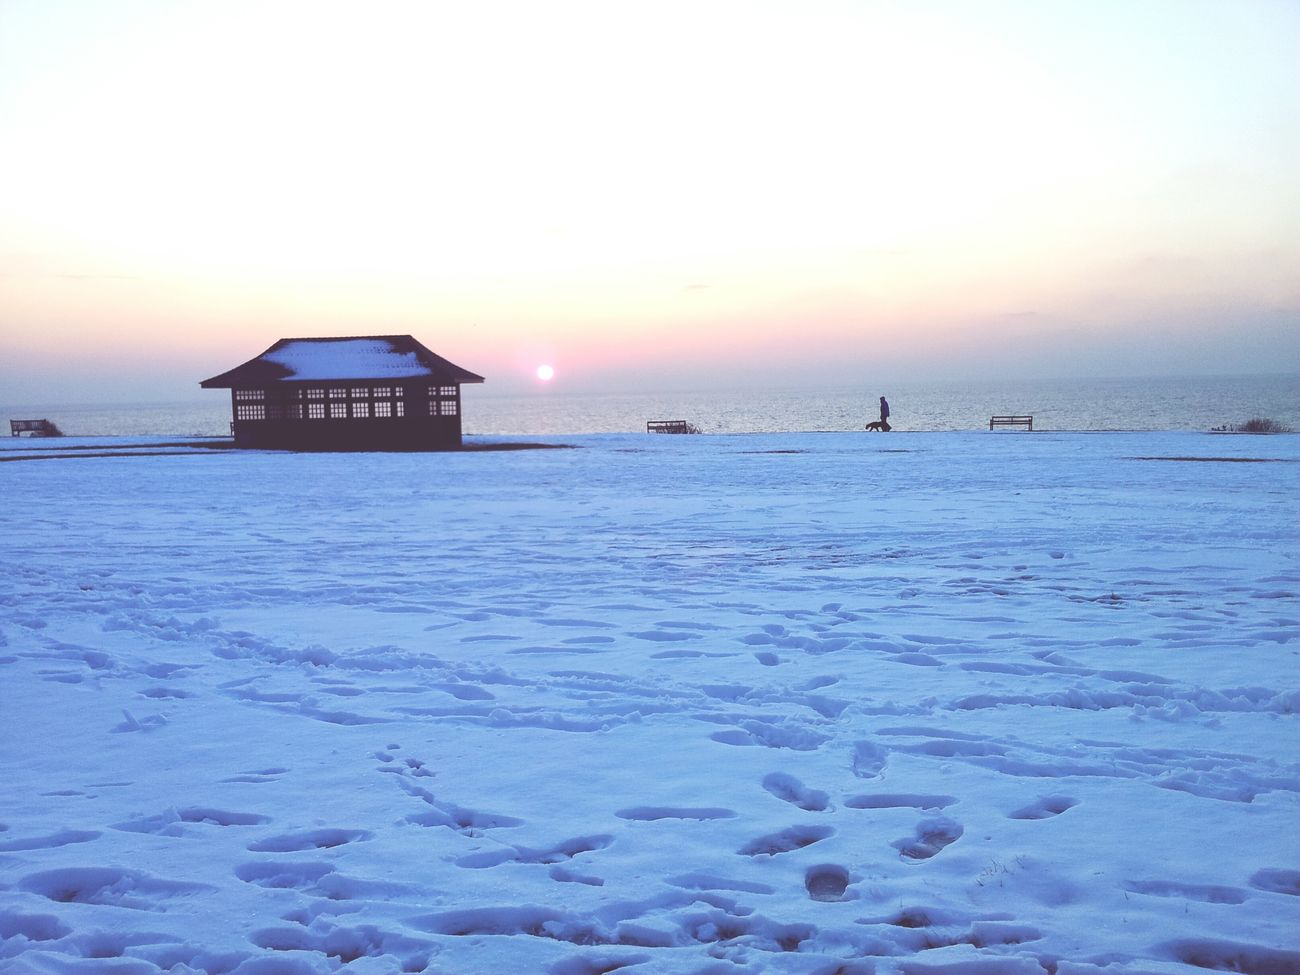 Frinton on sea Winter Wonderland Wintertime Snow Sunrise Snow Covered Frinton-on-Sea Coast Footprints Frinton